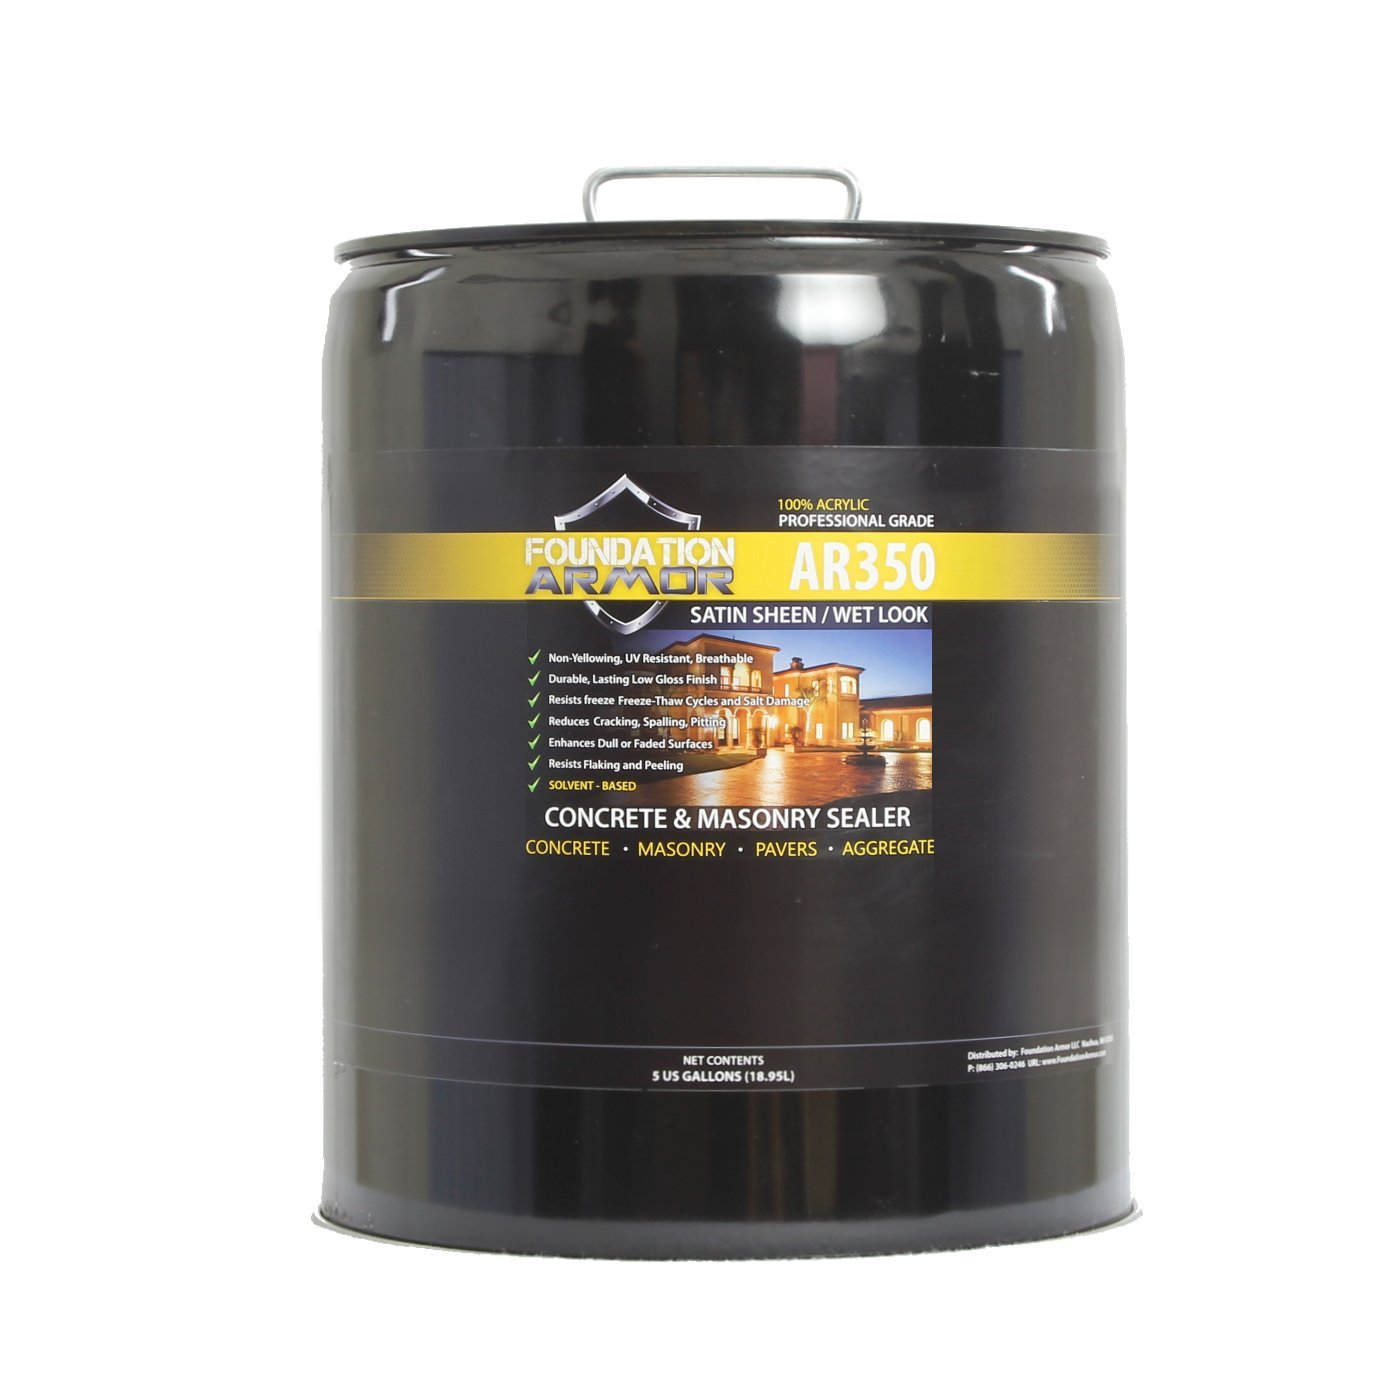 Foundation Armor Concrete Sealer